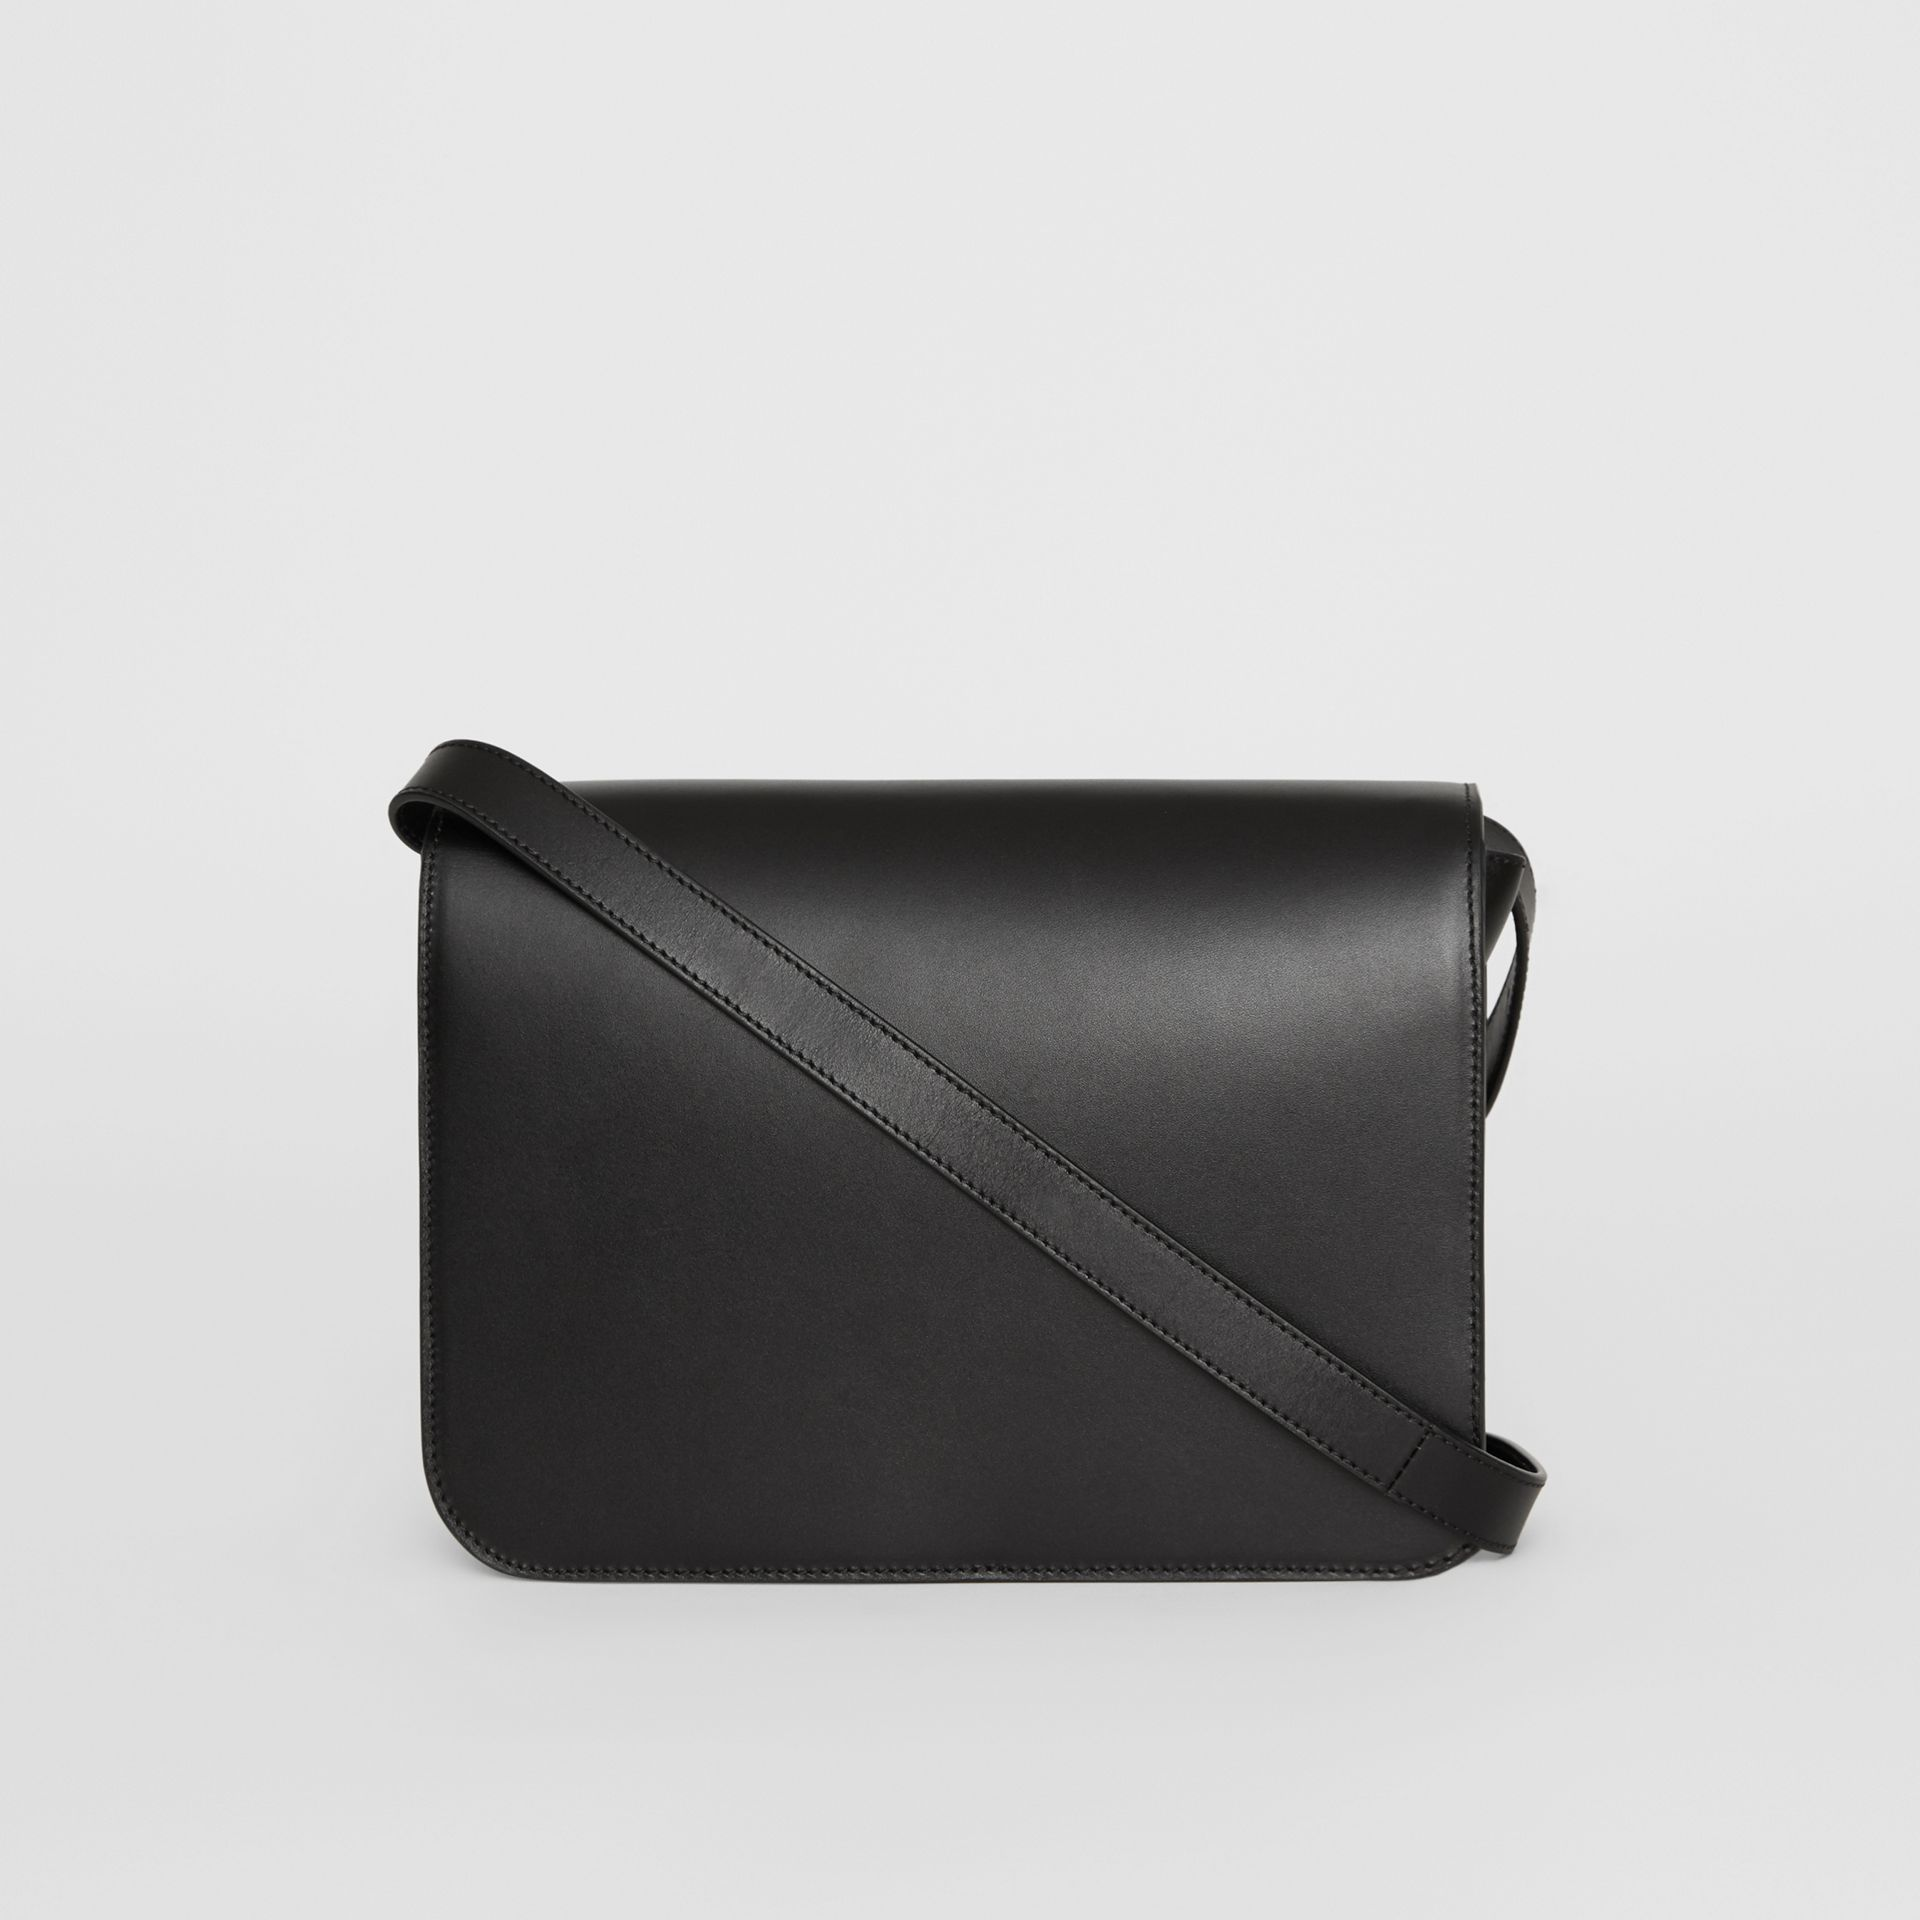 Medium Leather TB Bag in Black - Women | Burberry - gallery image 7